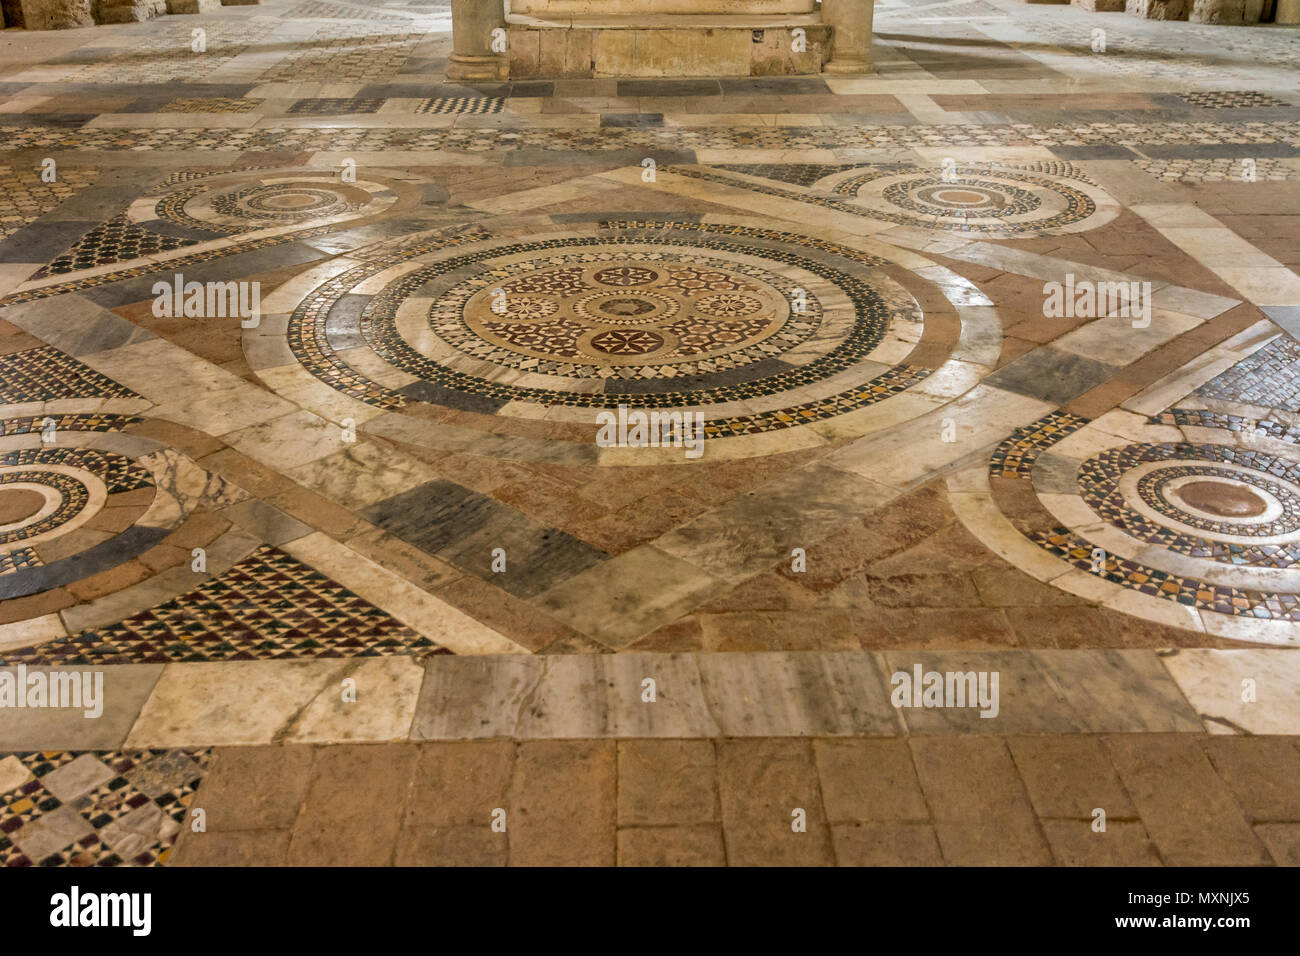 Tuscania (Viterbo), Italy - 2 may, 2018: Interior of San Pietro Church, details of the Cosmatesque Pavements with geometric decorativ inlay - Stock Image